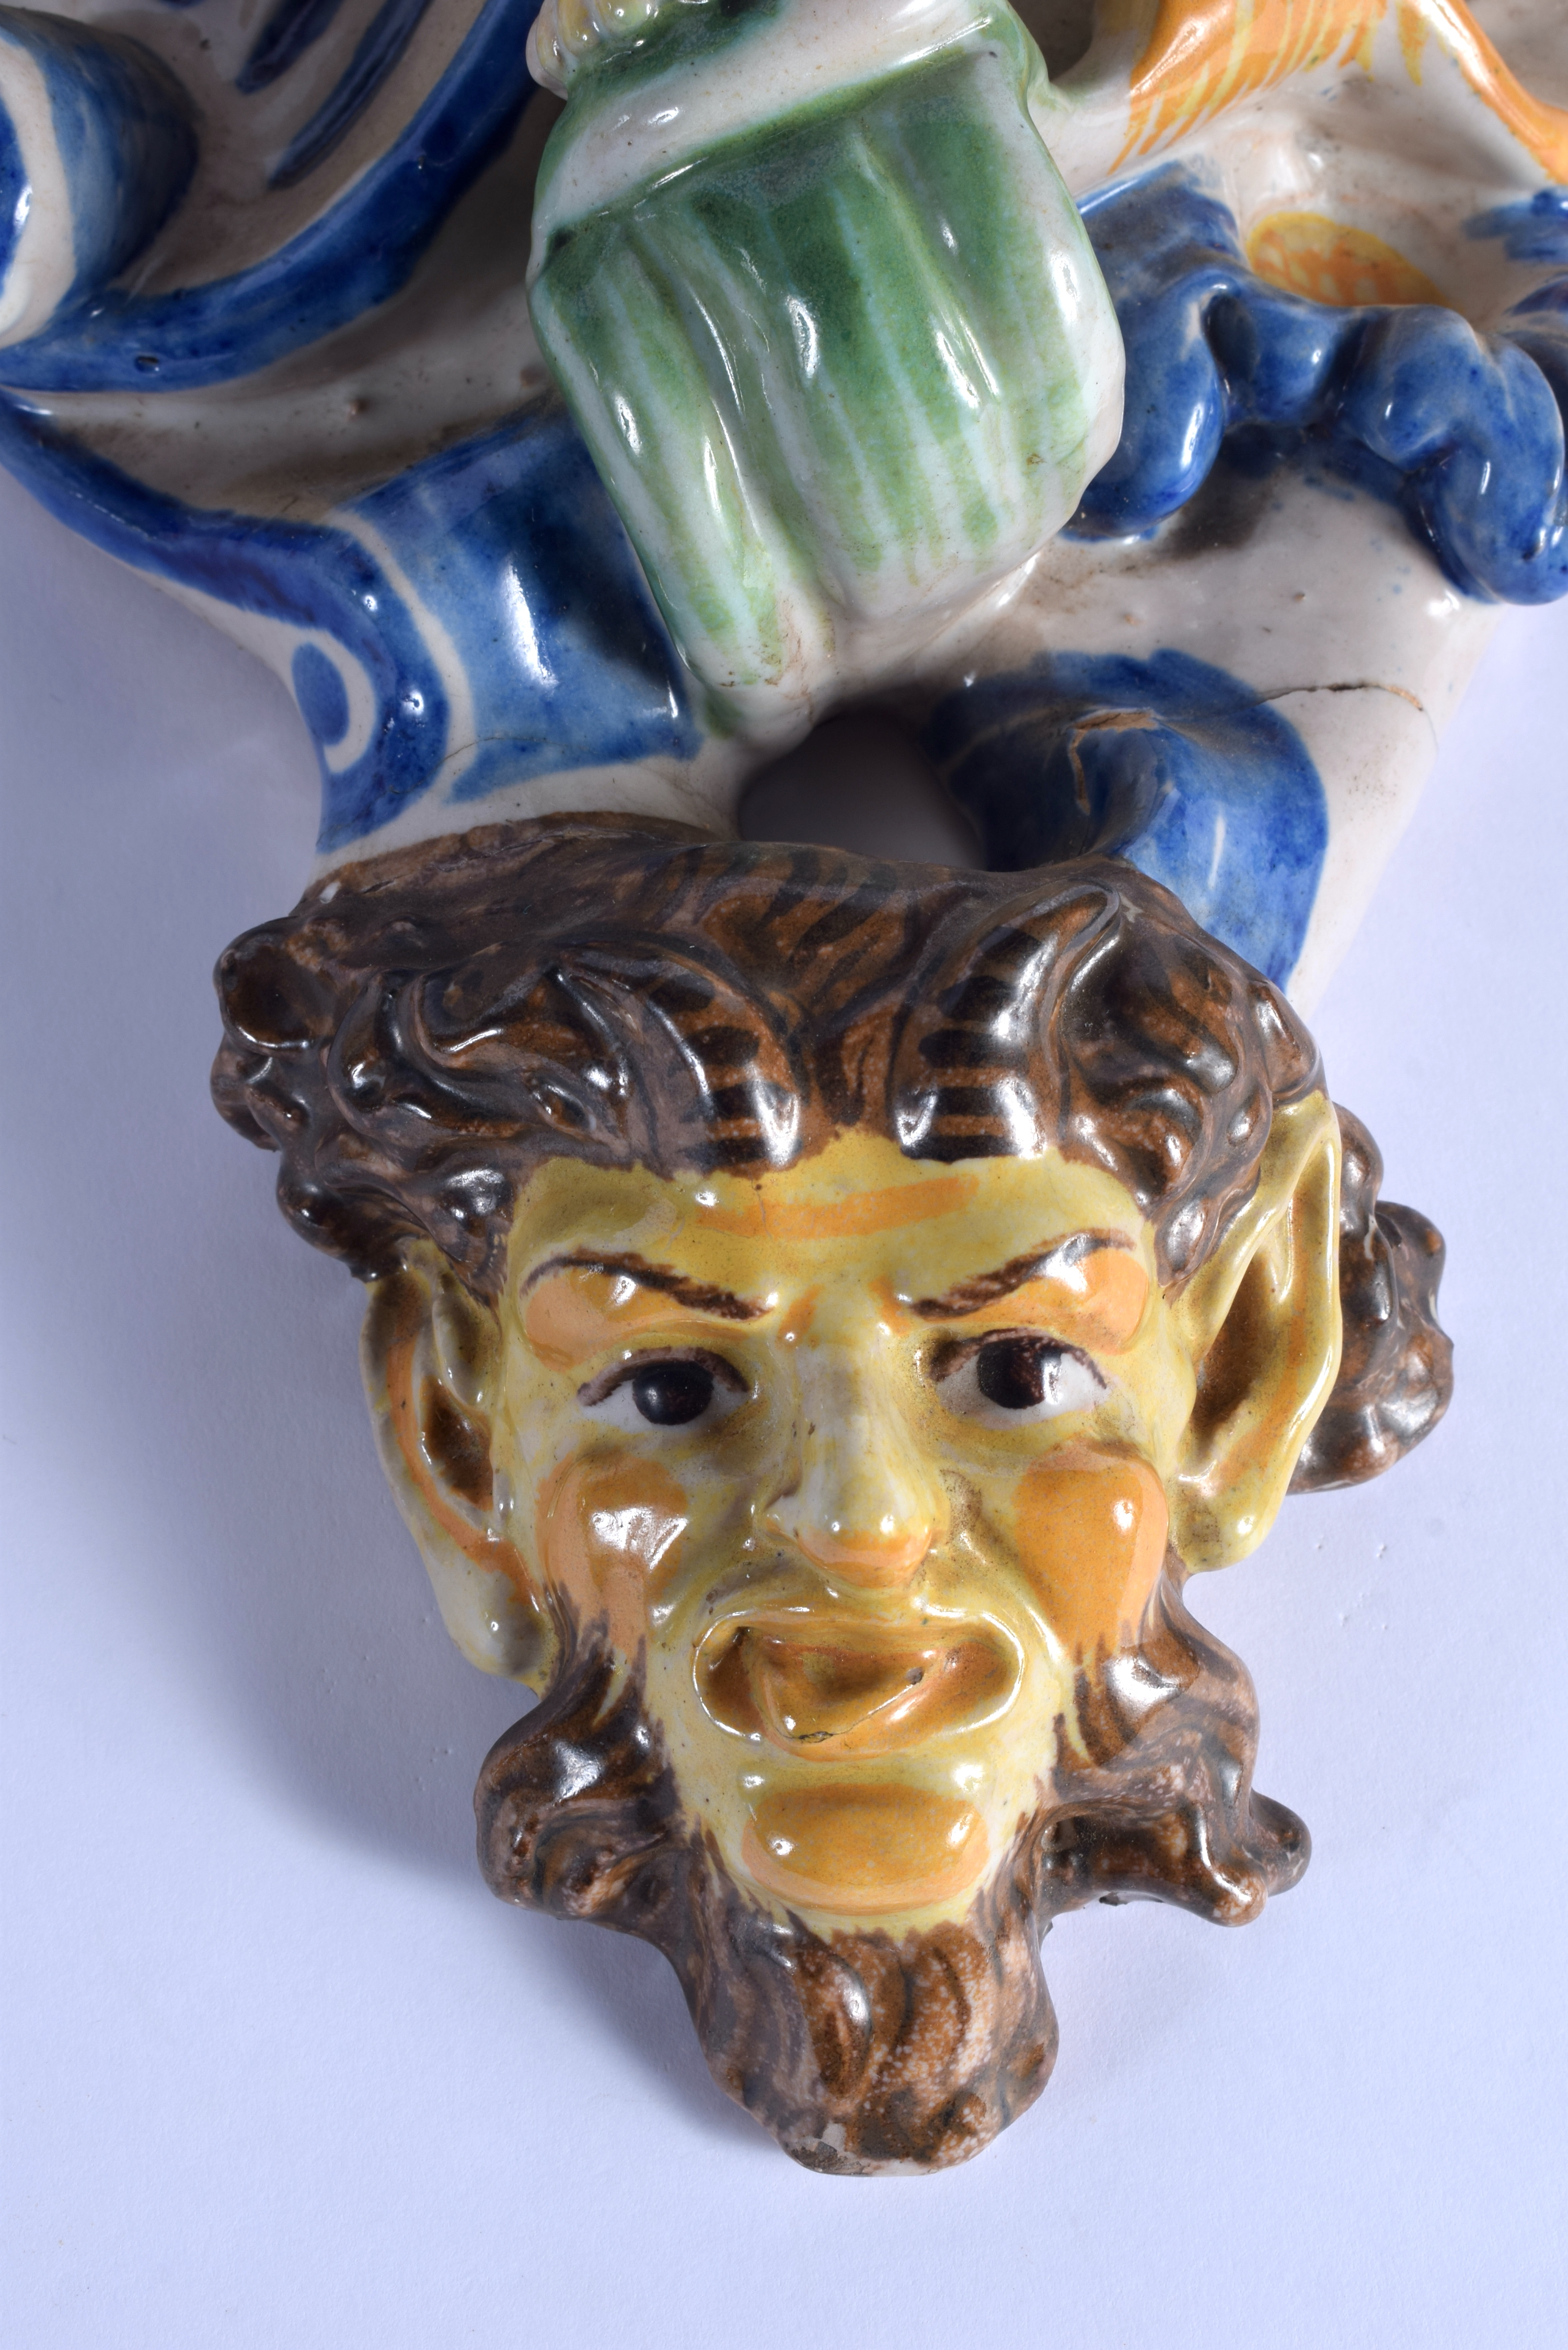 A LARGE PAIR OF 19TH CENTURY ITALIAN MAJOLICA POTTERY WALL BRACKETS formed with figures over mask he - Image 5 of 7